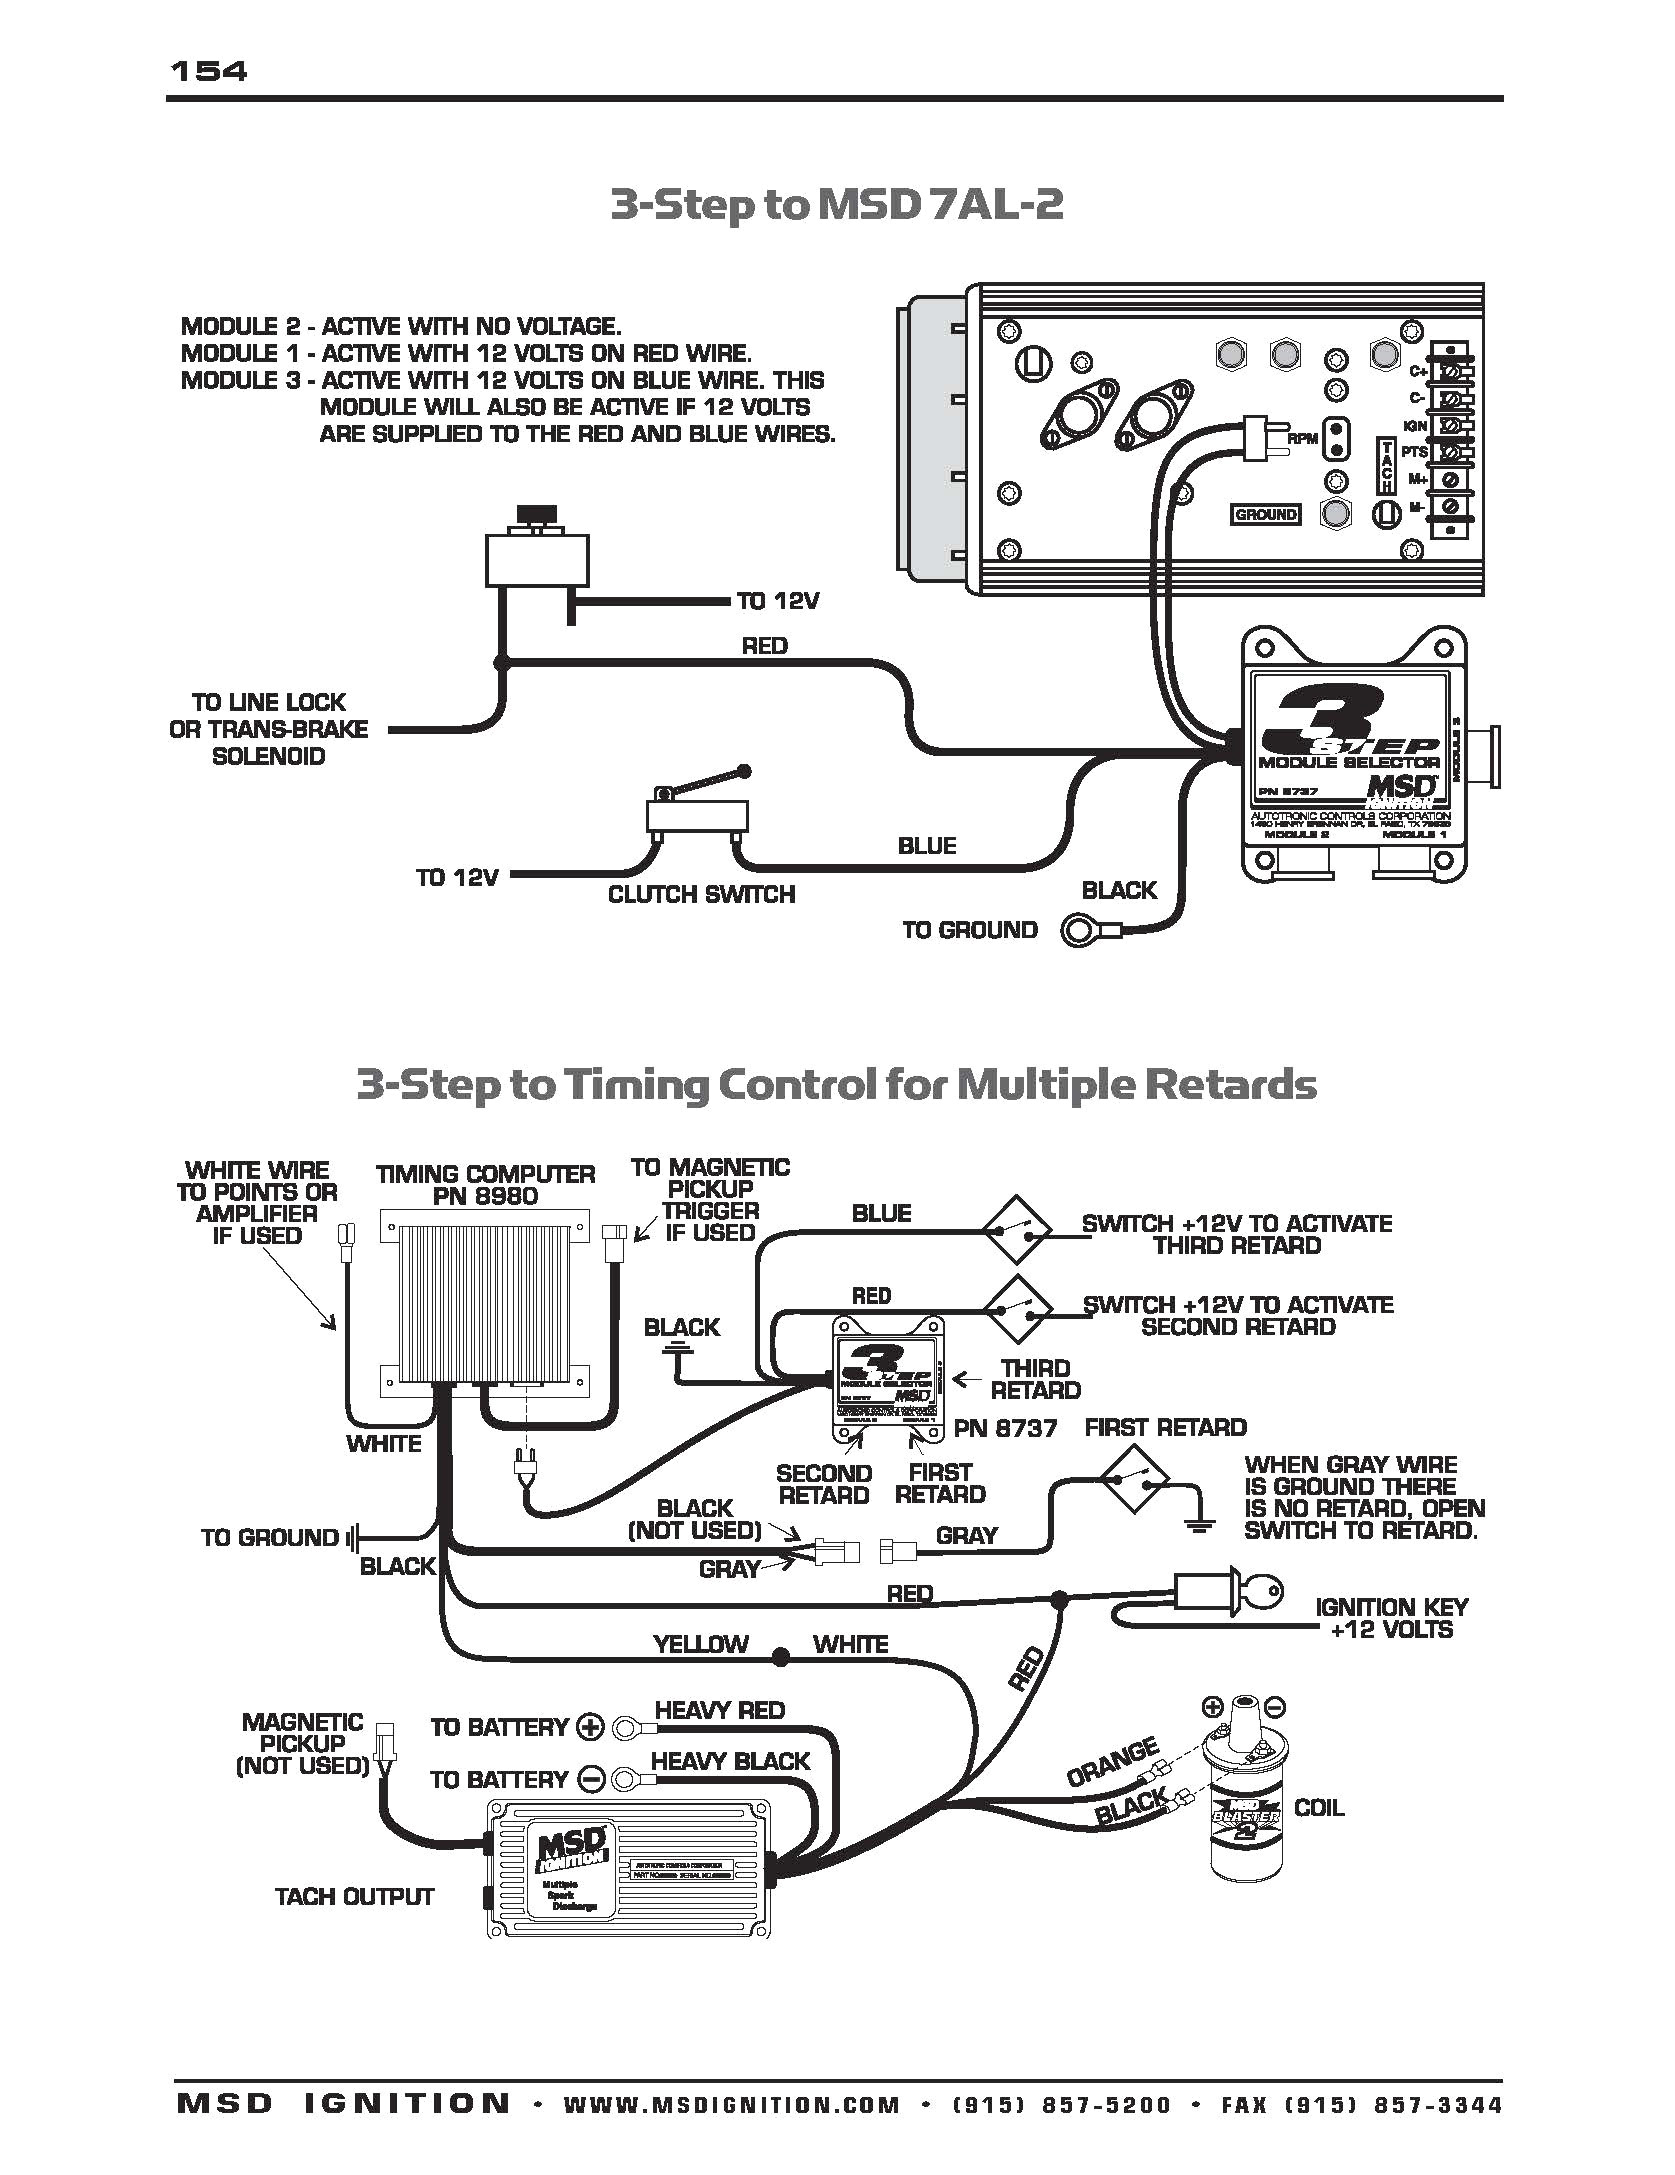 msd wiring diagram inspirational ford ignition control module wiring diagram rate msd ignition wiring